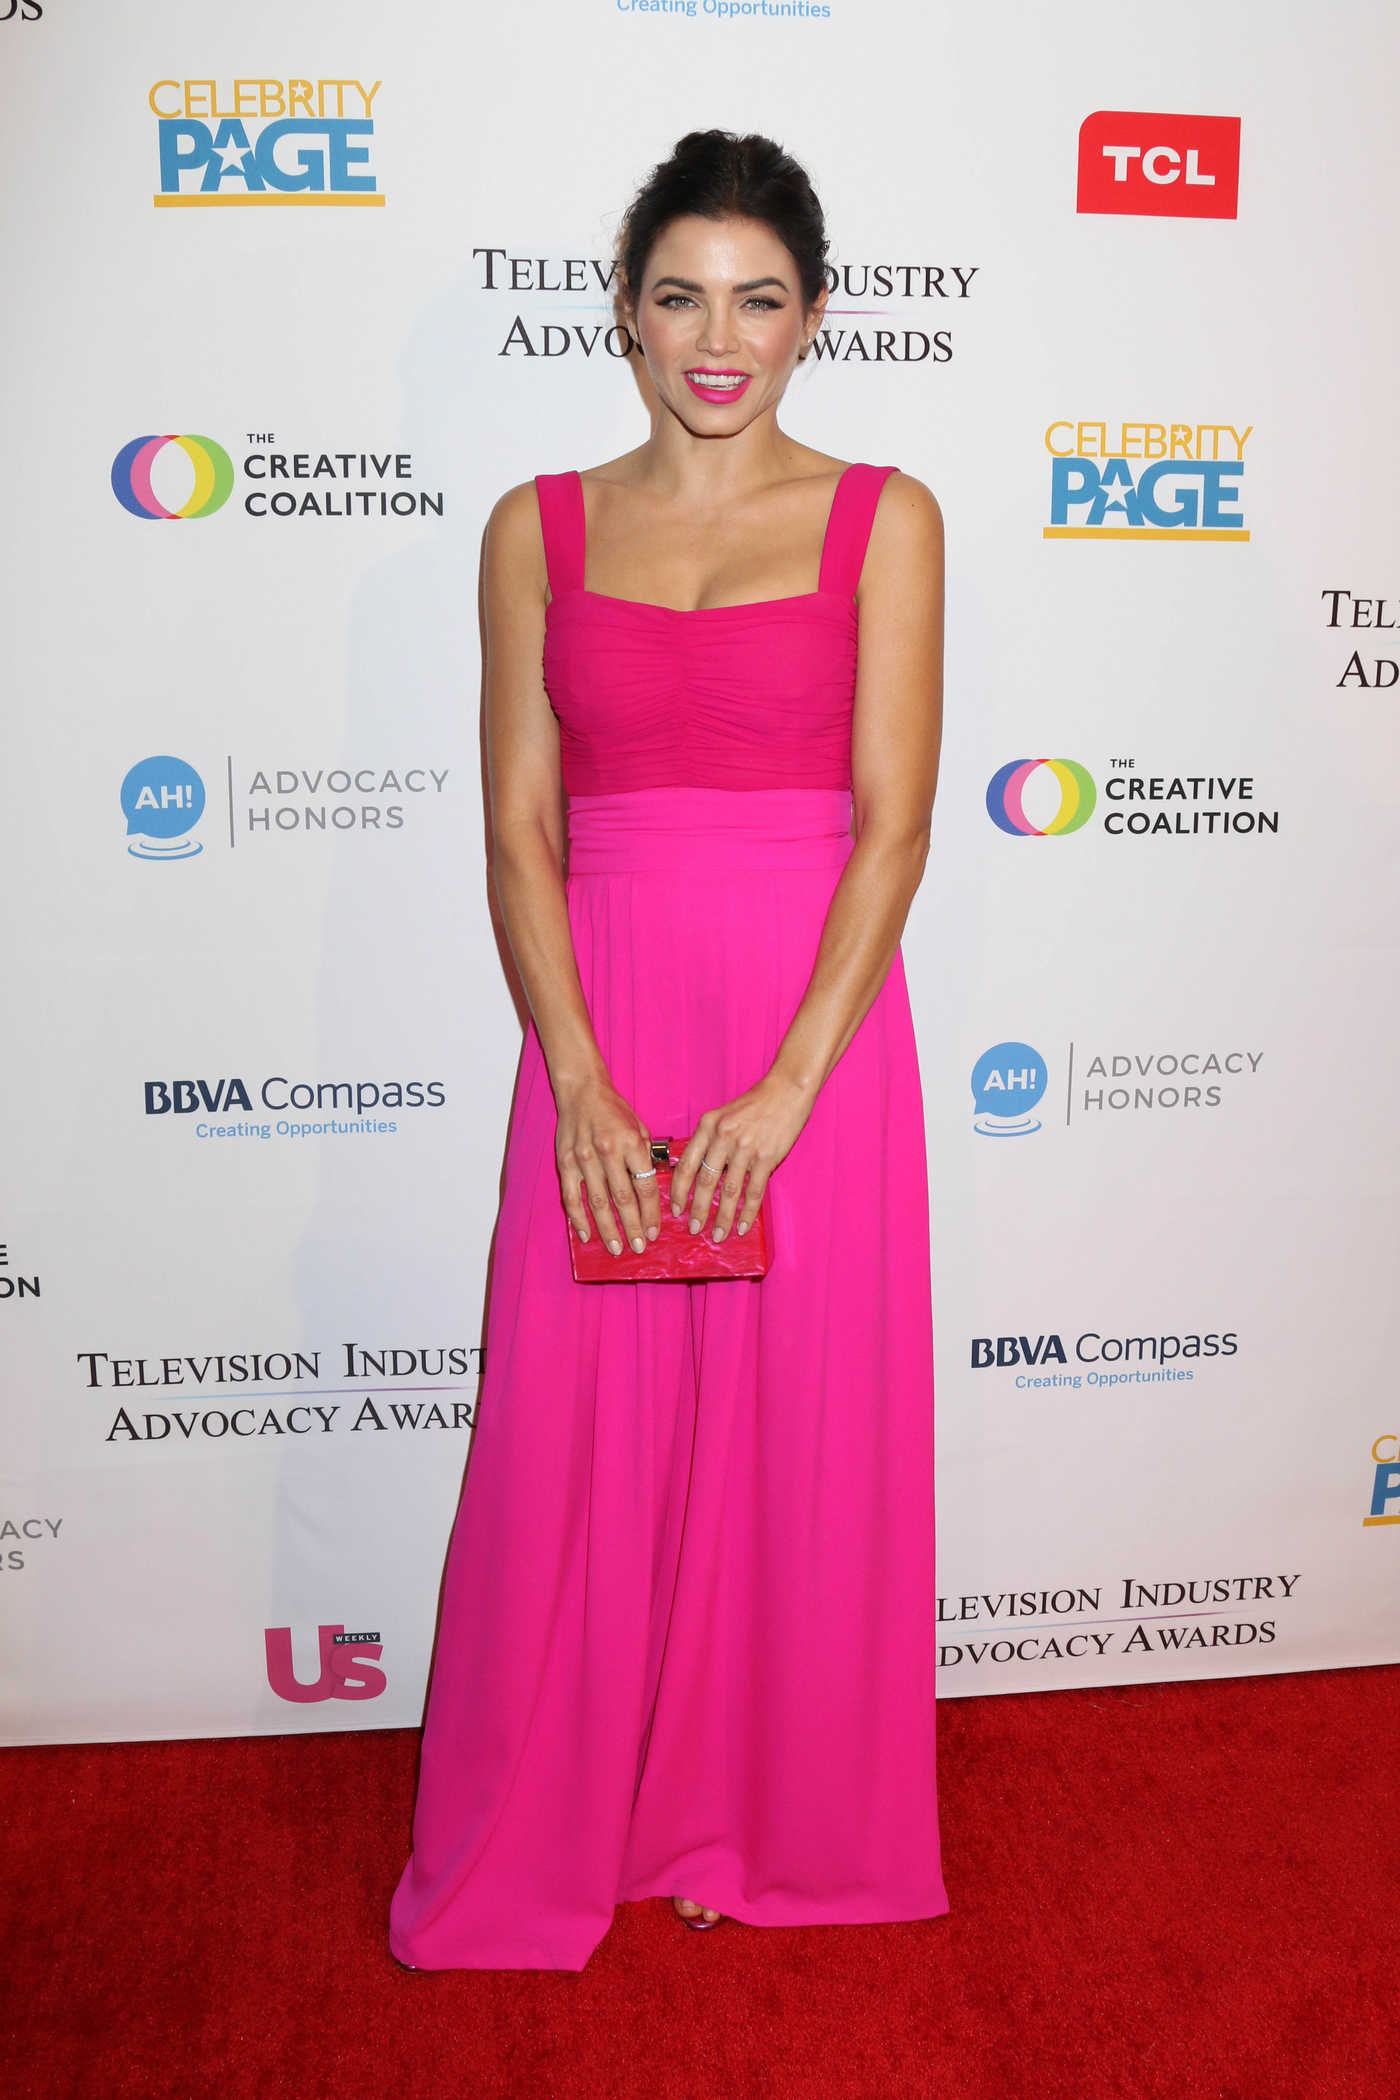 Jenna Dewan at 2018 Television Industry Advocacy Awards in LA 09/15/2018